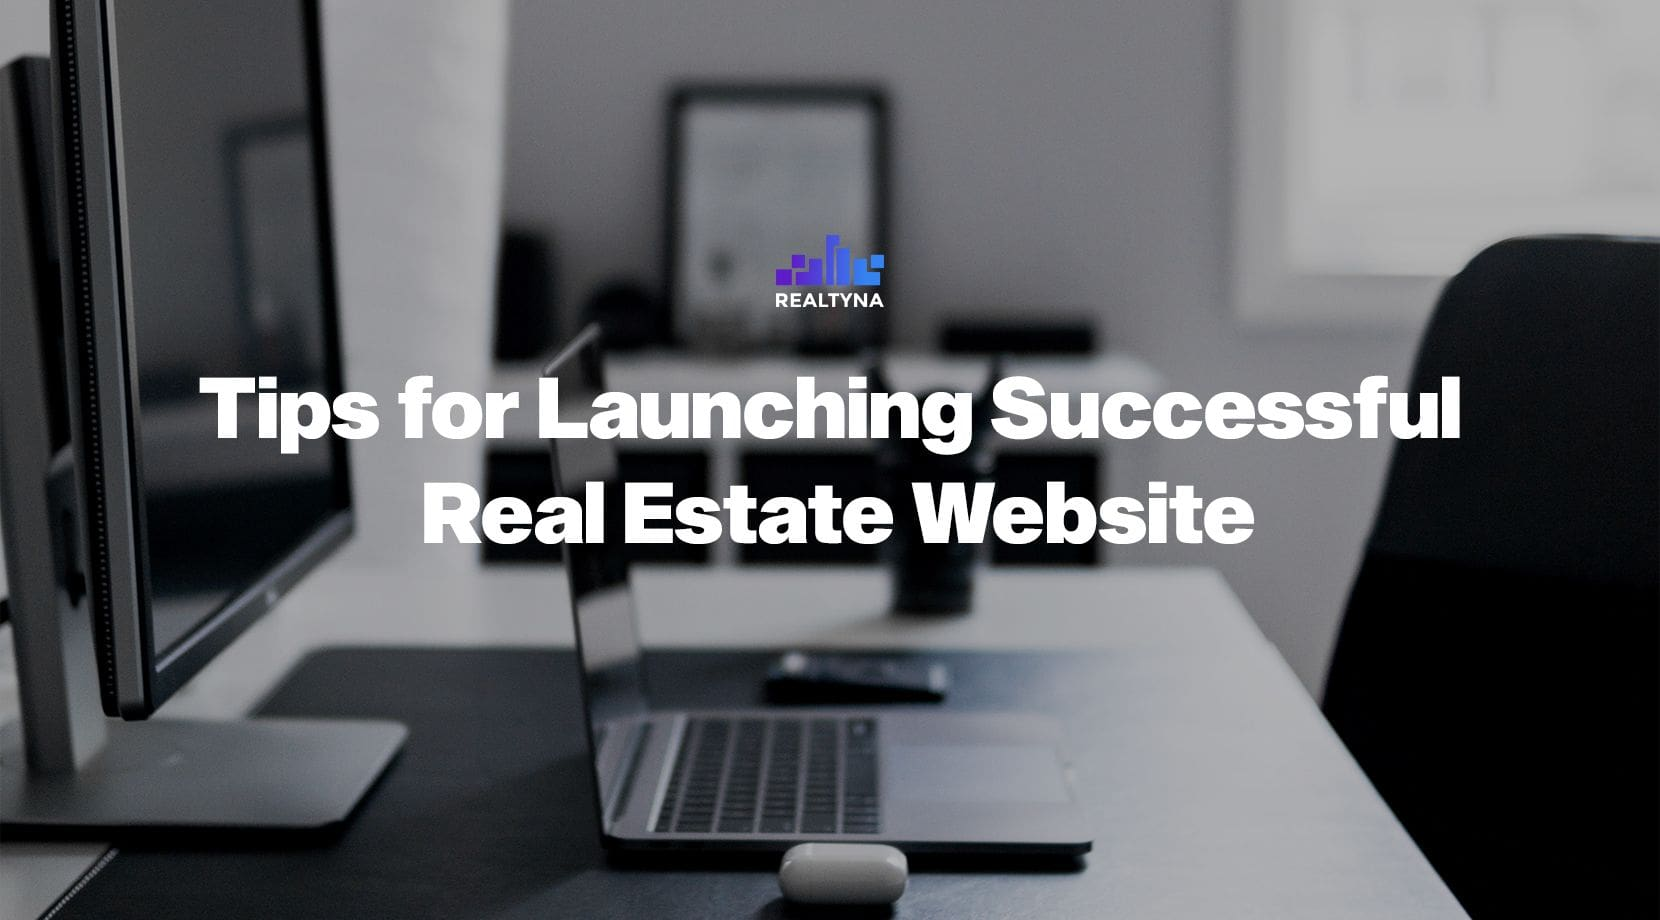 Tips for Launching a Successful Real Estate Website